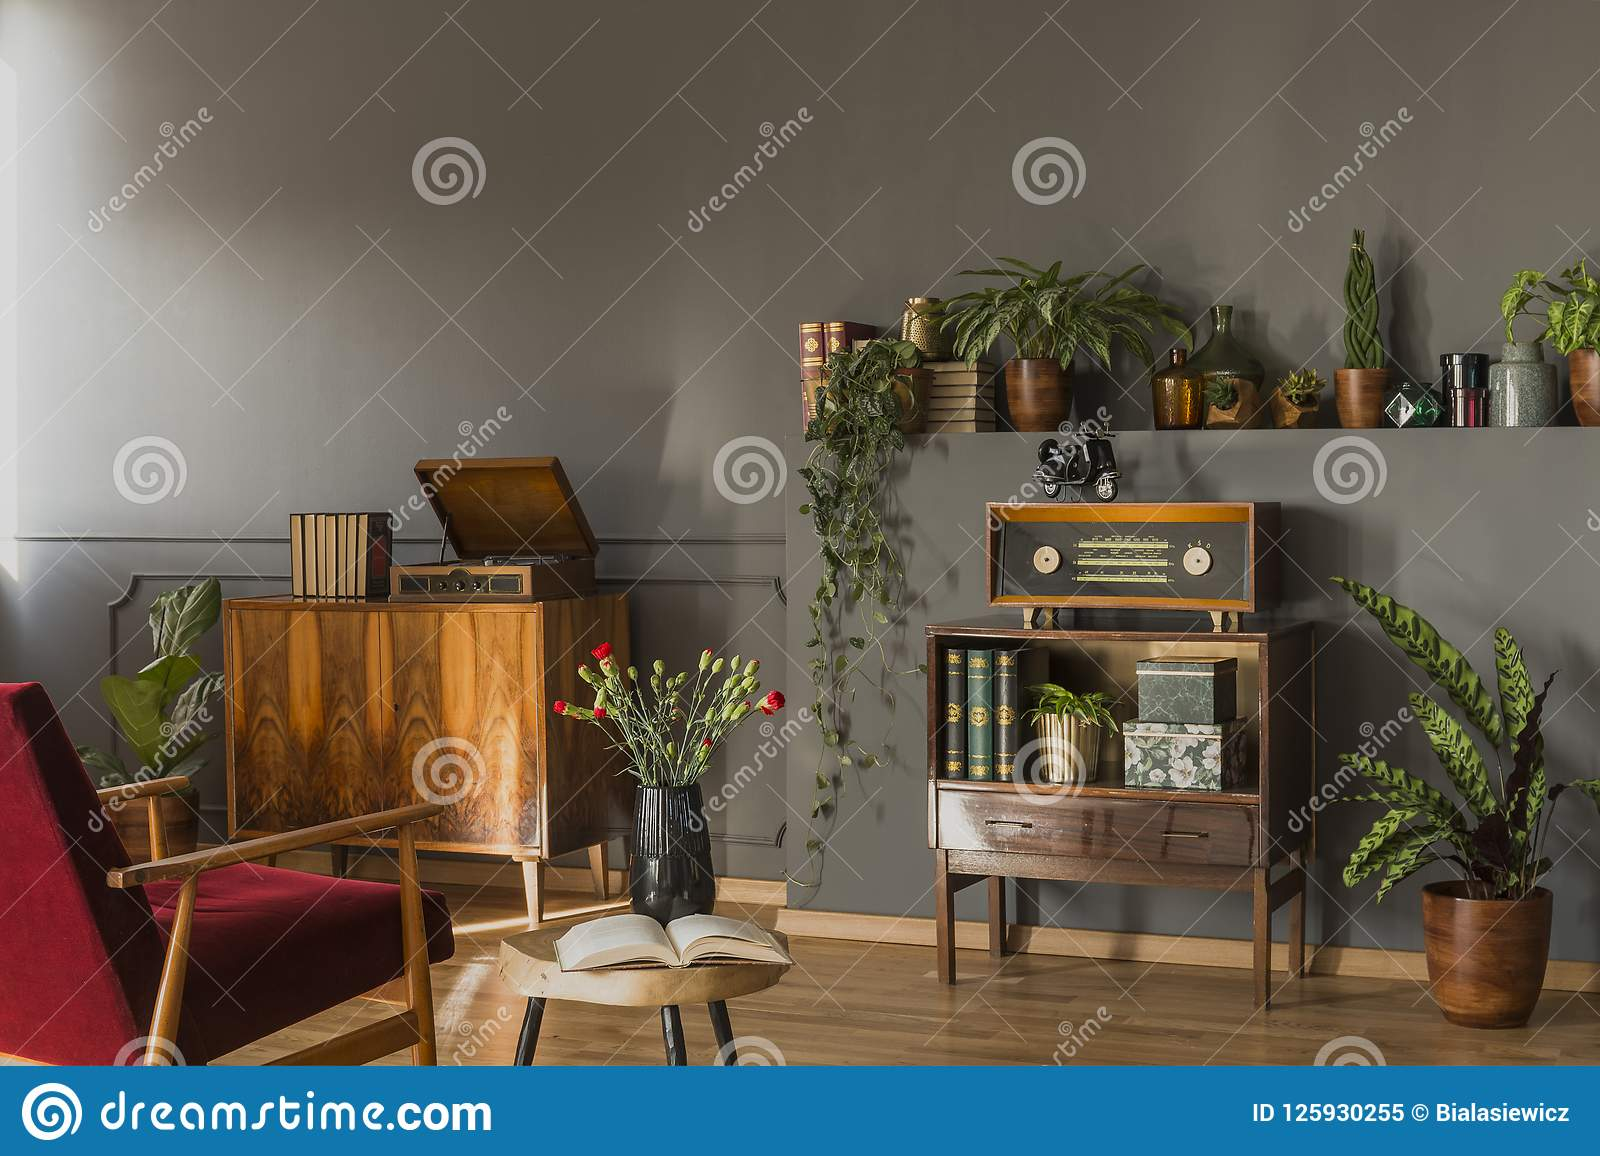 Real photo of a red armchair standing in front to a small cupboard with books and radio, shelf with plants and shelf with